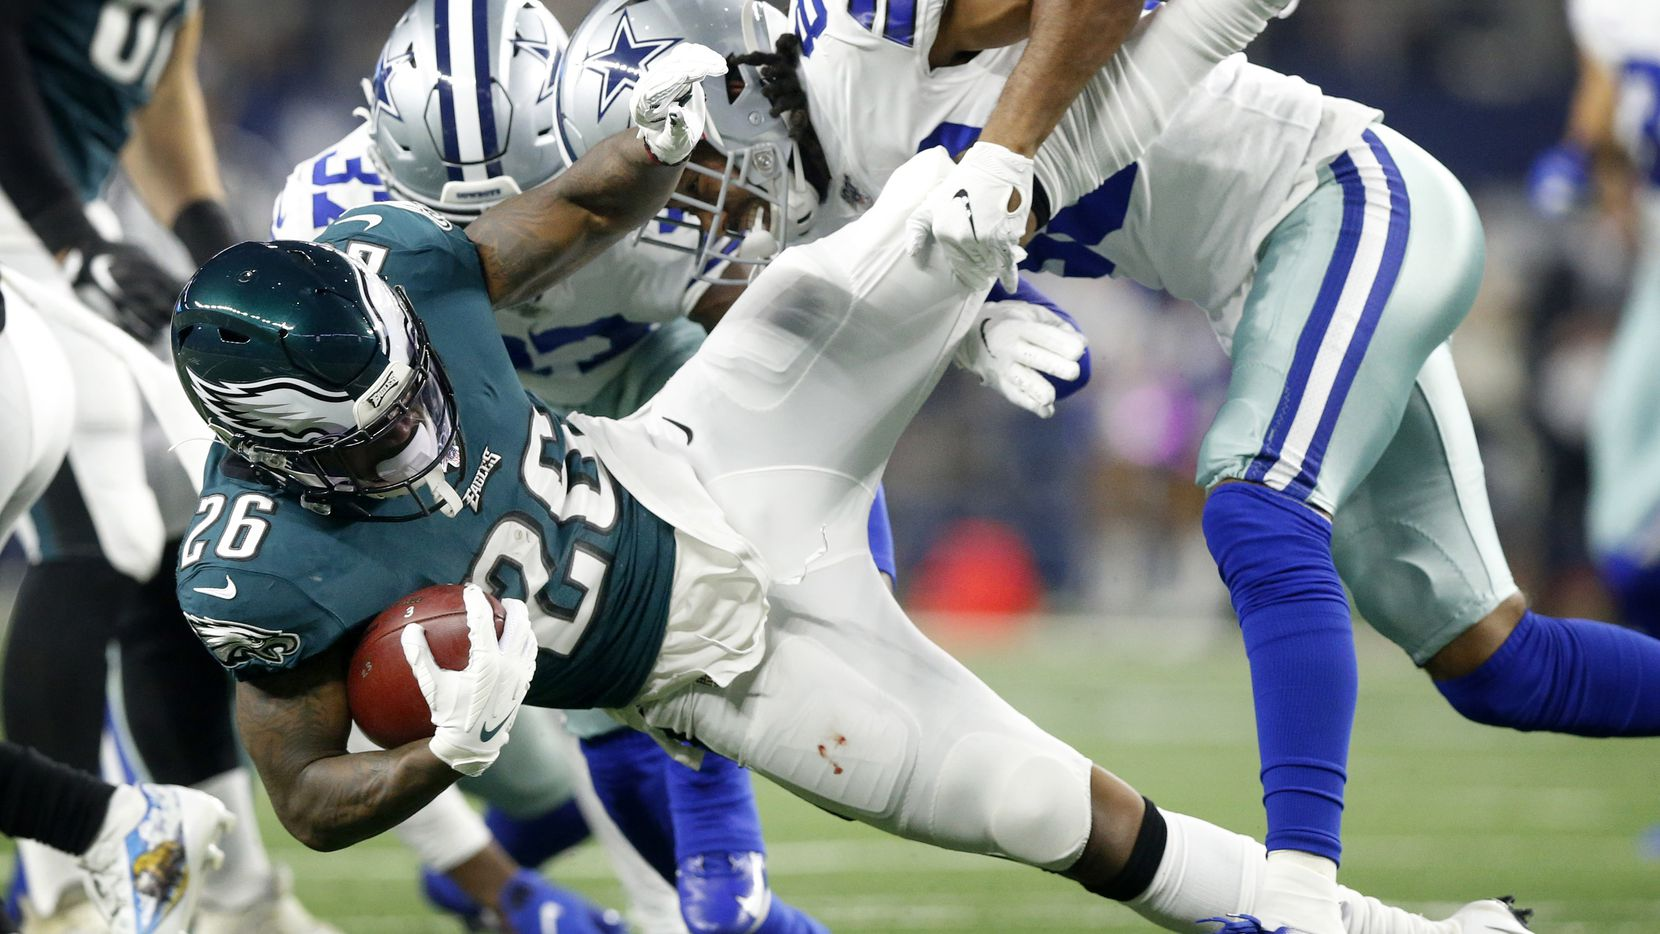 Dallas Cowboys wide receiver Ventell Bryant (83) and defensive back Donovan Wilson (37) drop Philadelphia Eagles kick returner Miles Sanders (26) during the first quarter at AT&T Stadium in Arlington, Texas, Sunday, October 20, 2019. (Tom Fox/The Dallas Morning News)